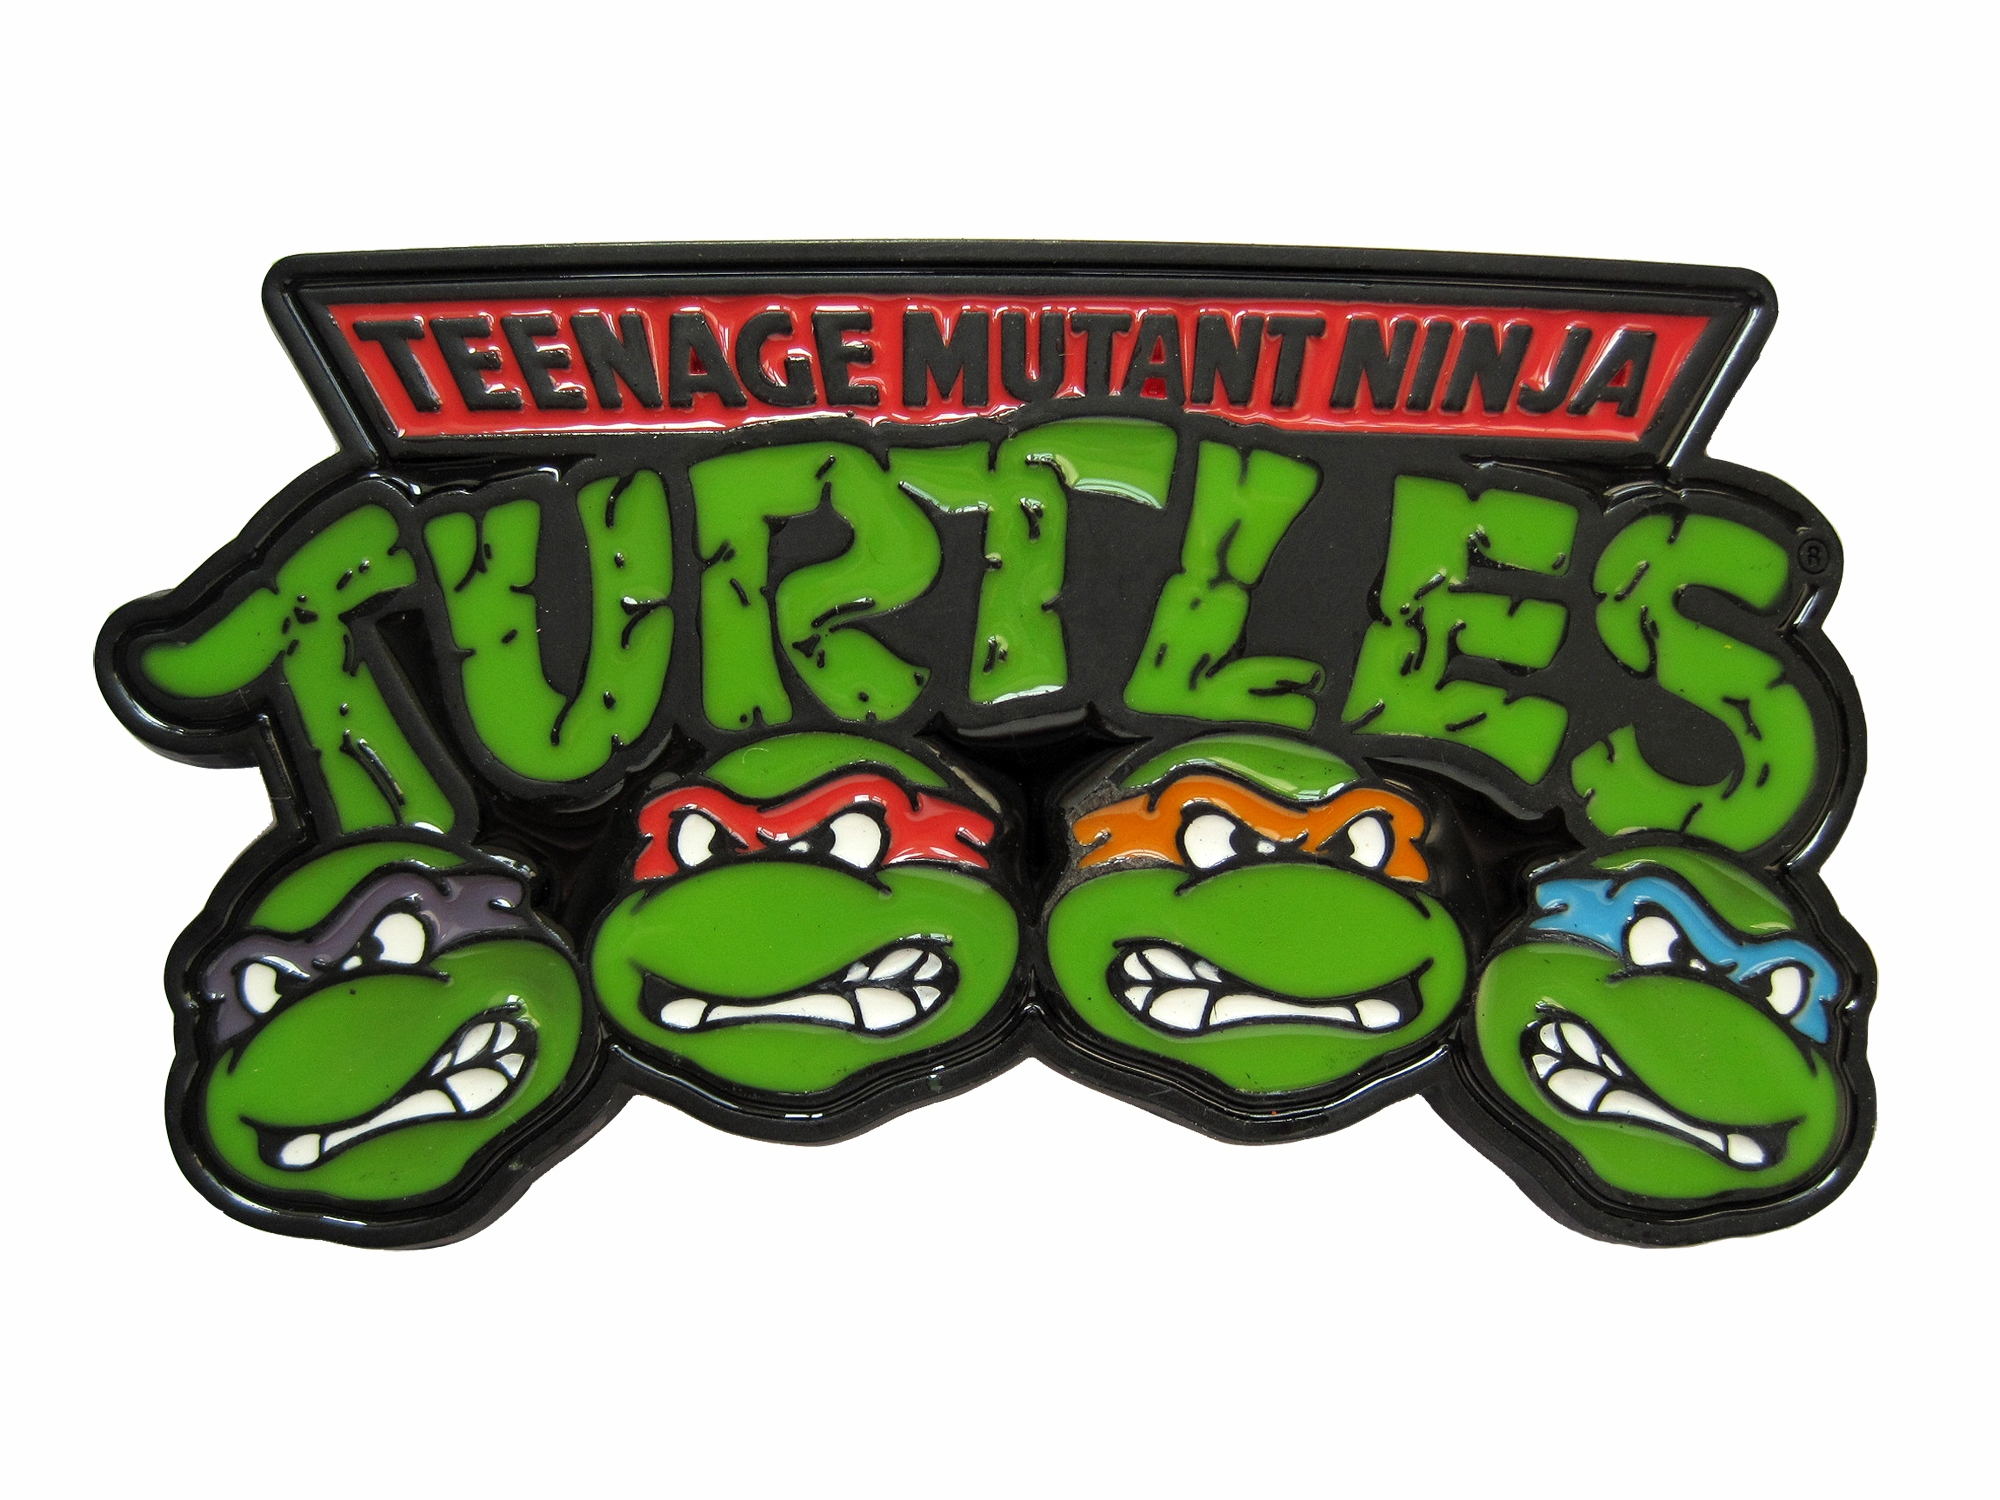 2000x1500 Categoryteenage Mutant Ninja Turtles The Flop House Wiki